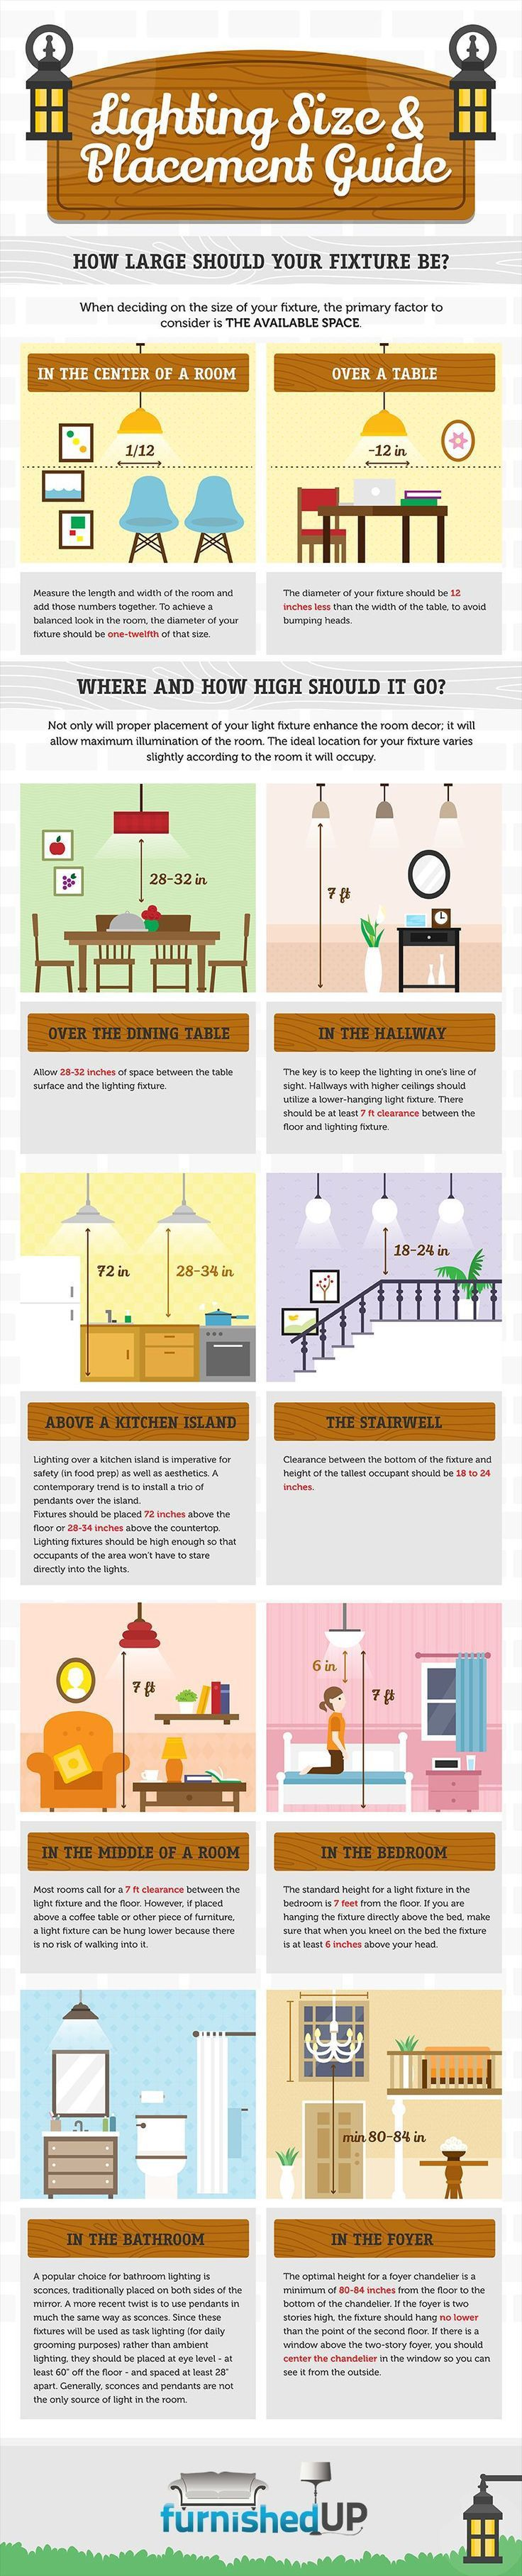 Lighting size and placement guide infographic                                                                                                                                                                                 More